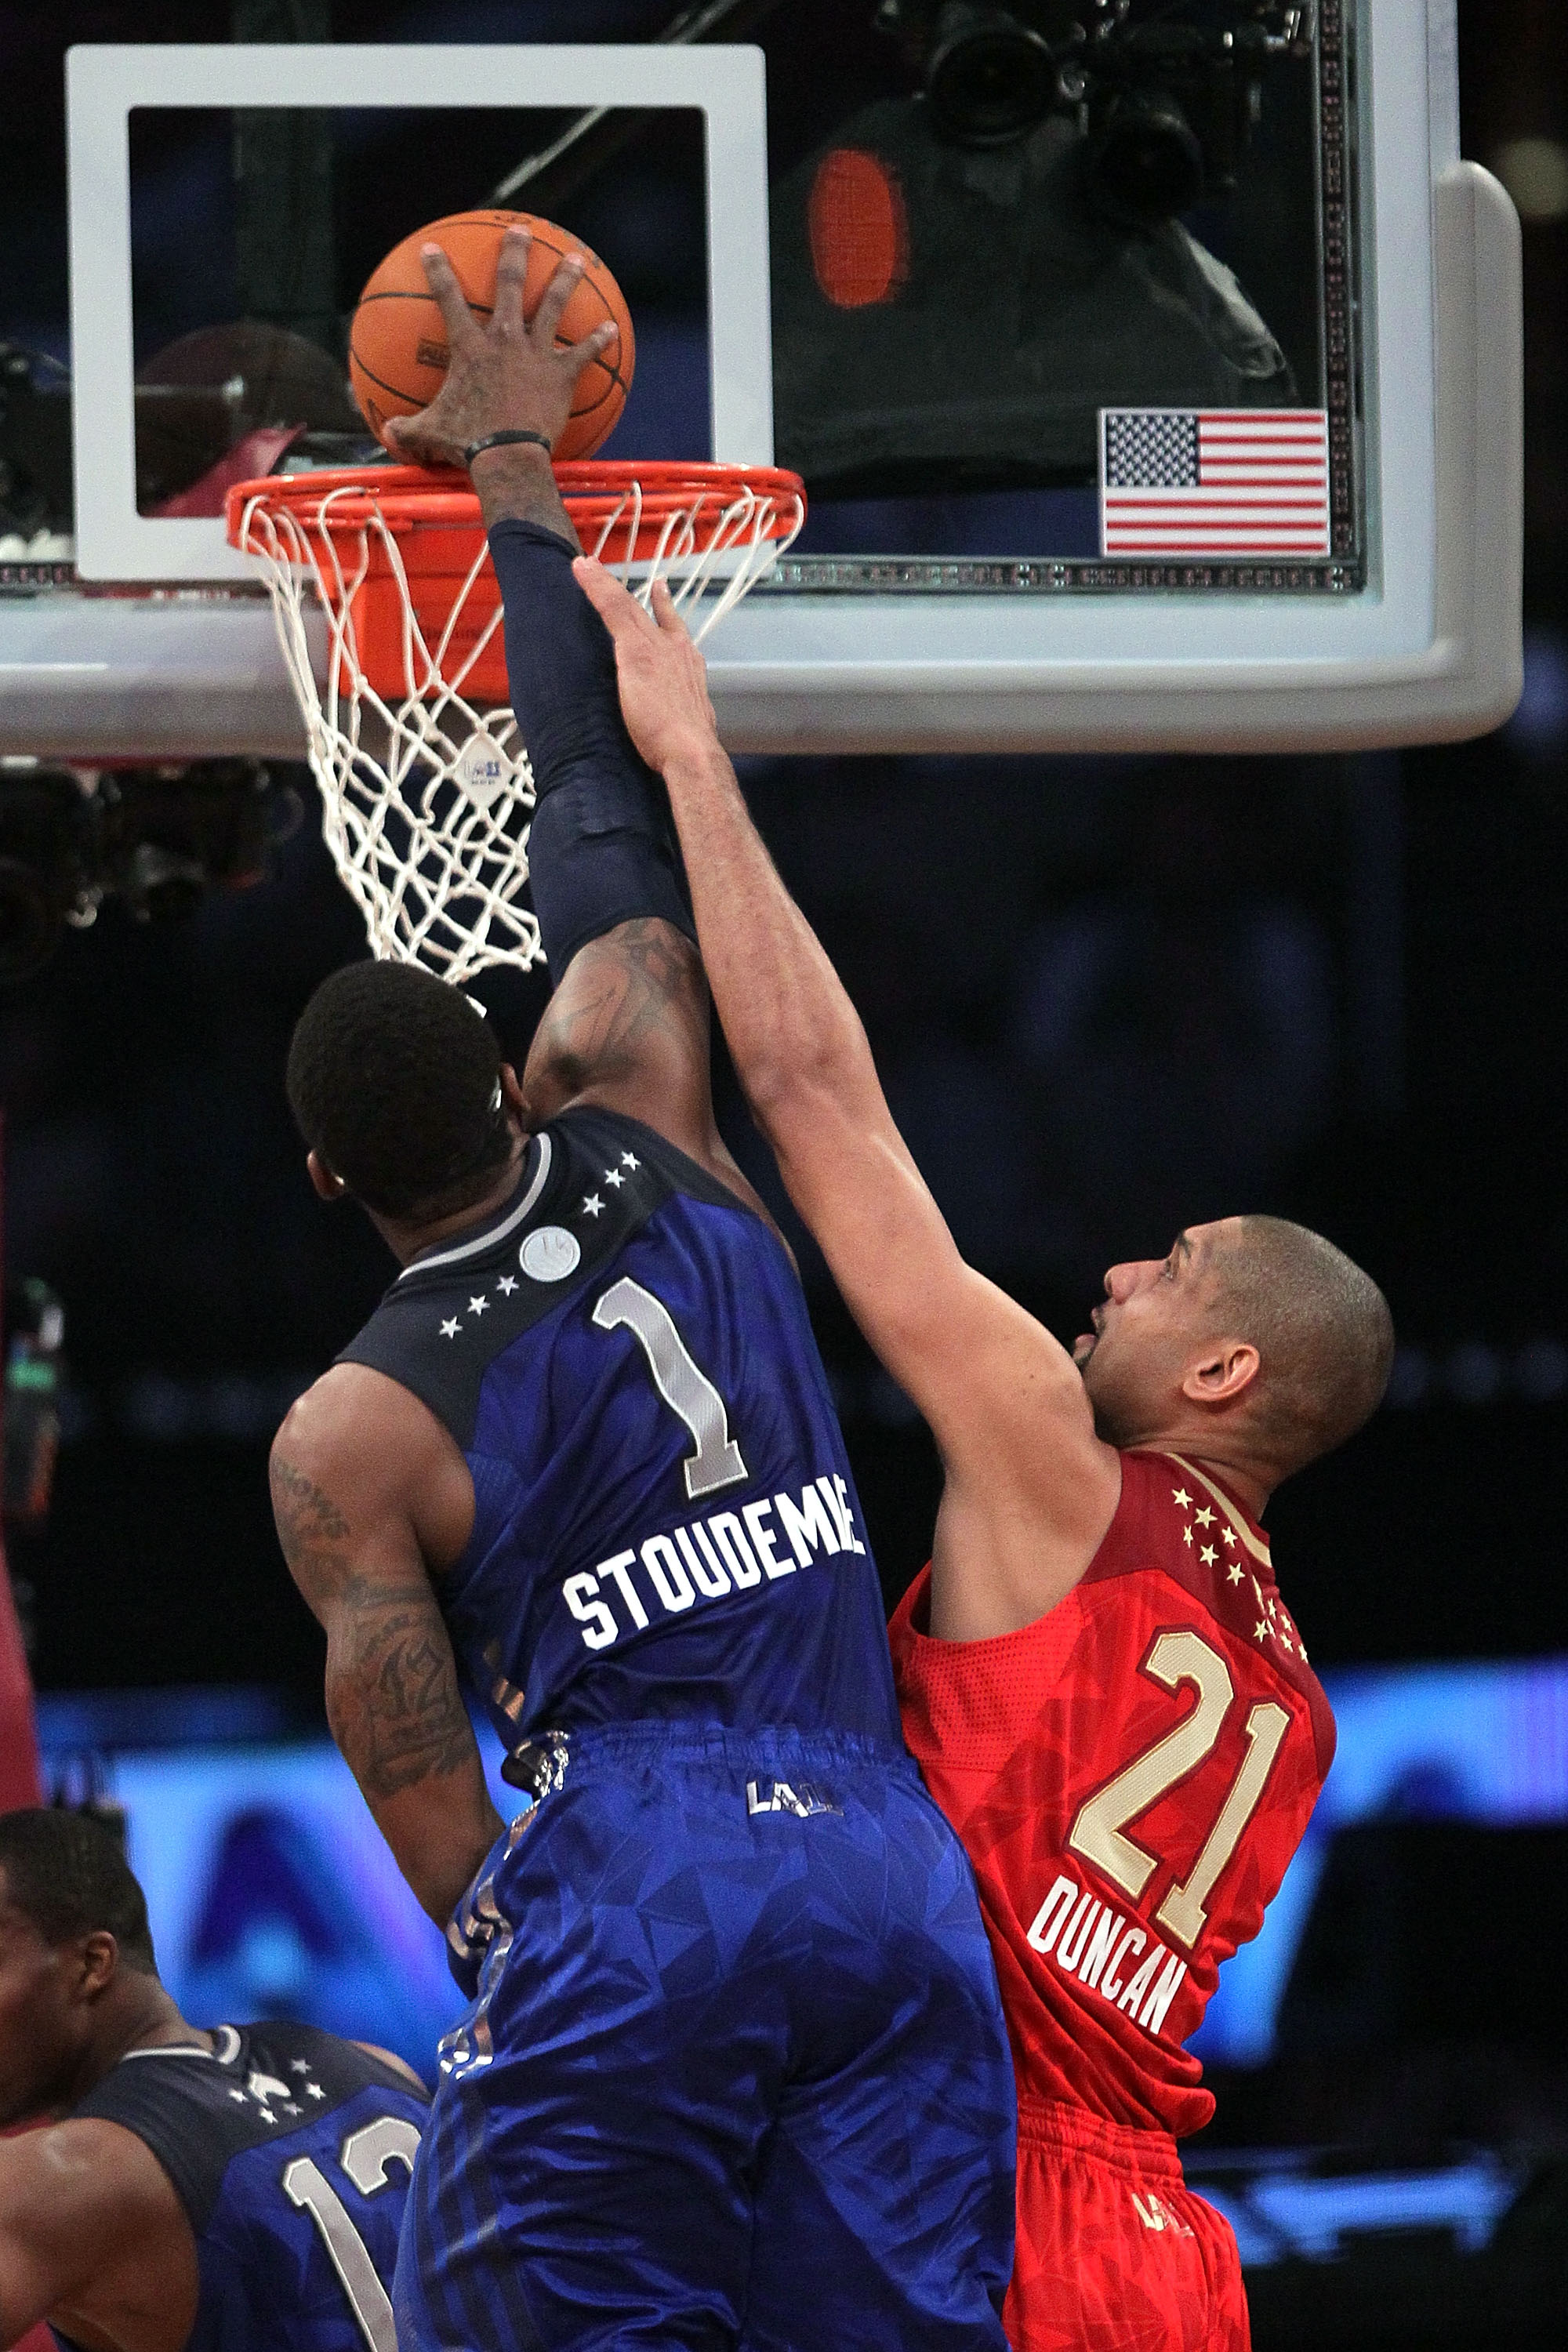 LOS ANGELES, CA - FEBRUARY 20:  Amare Stoudemire #1 of the New York Knicks and the Eastern Conference dunks over Tim Duncan #21 of the San Antonio Spurs and the Western Conference in the 2011 NBA All-Star Game at Staples Center on February 20, 2011 in Los